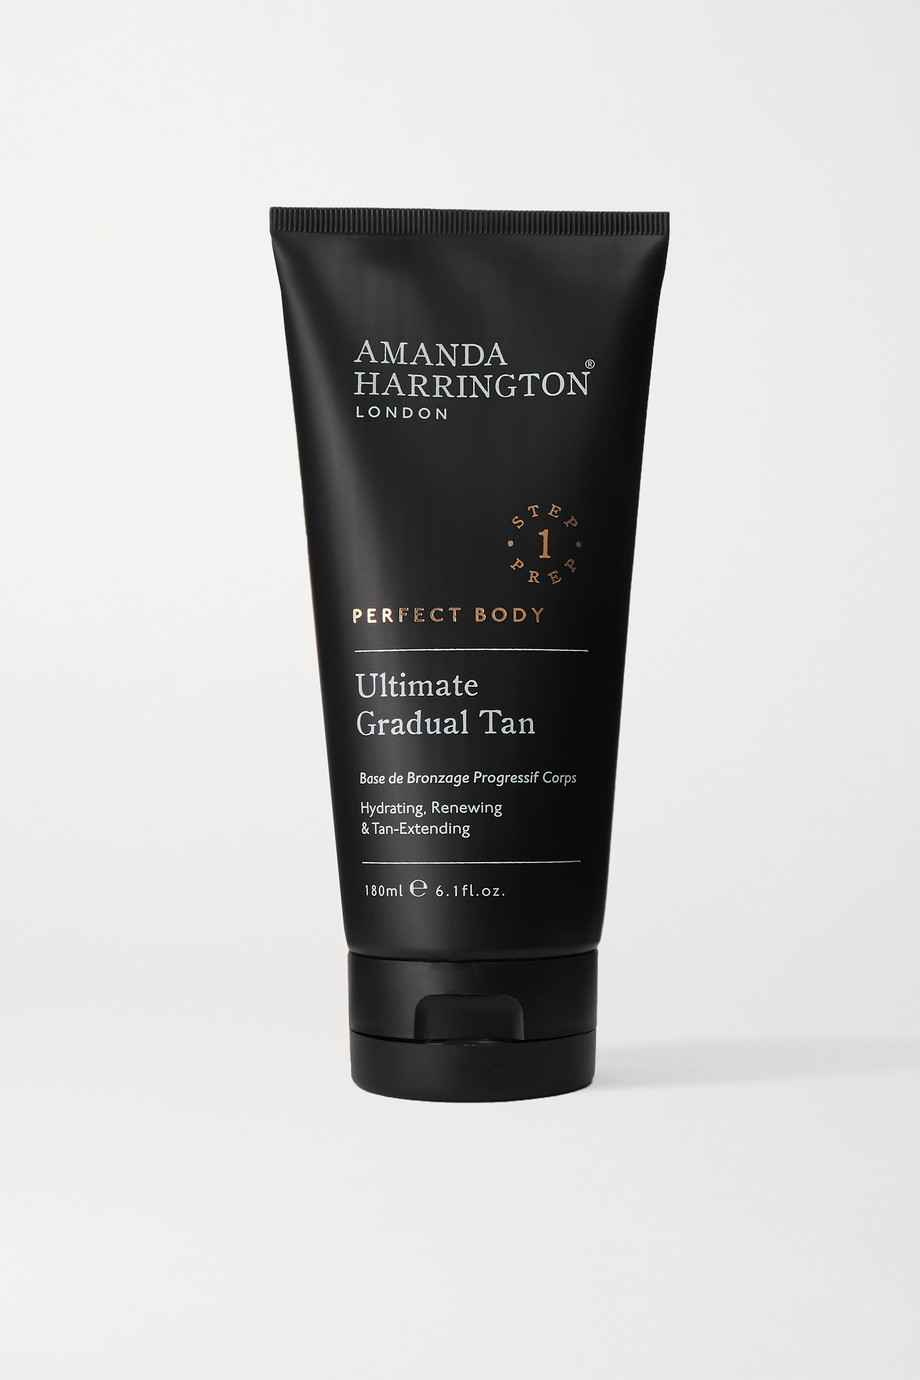 Amanda Harrington Perfect Body Ultimate Gradual Tan, 180ml